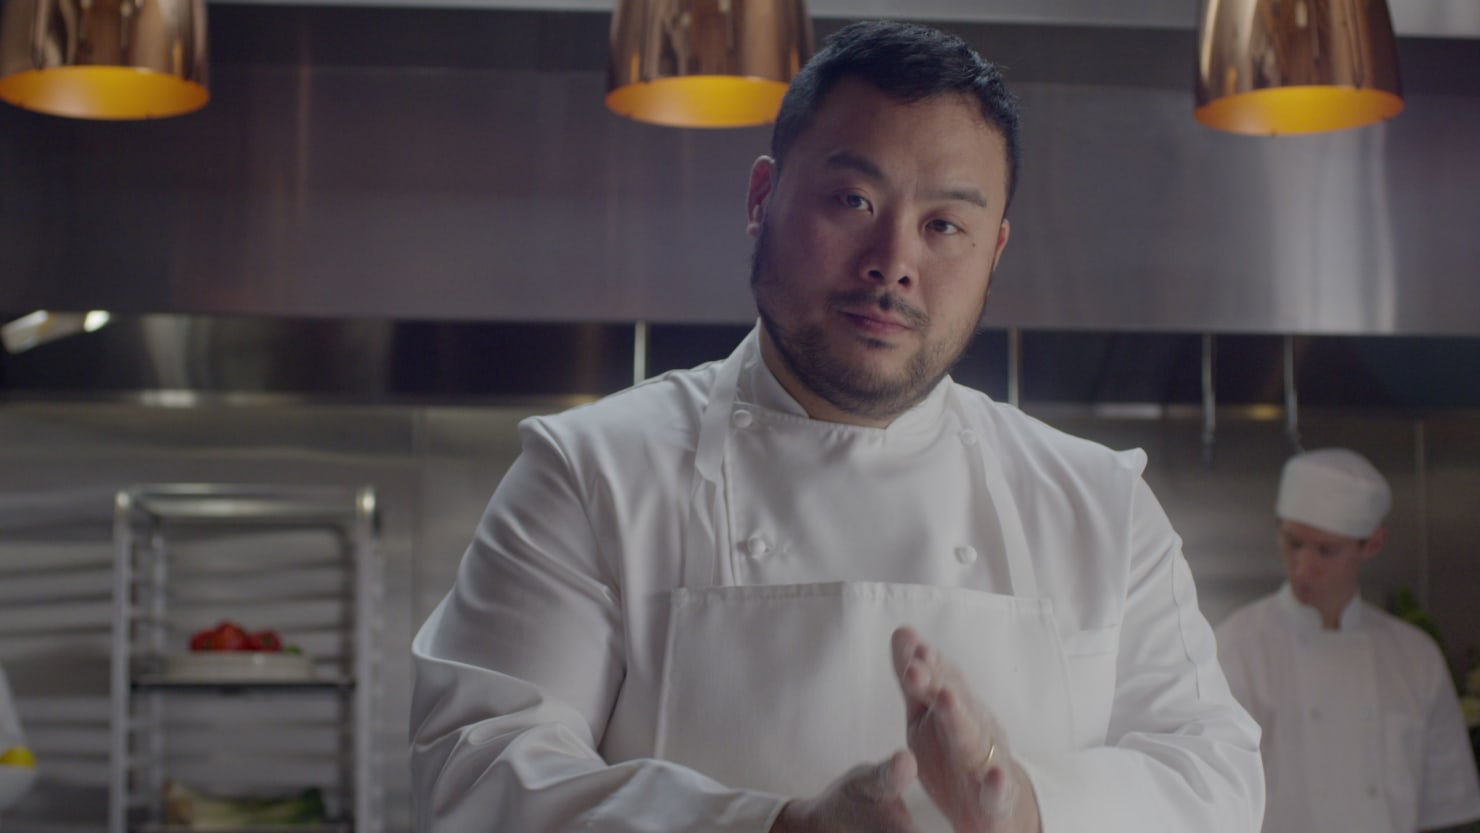 Chef David Chang Talks Netflix's 'Ugly Delicious' and Why Food Is 'One of the Last Bastions' of Racism